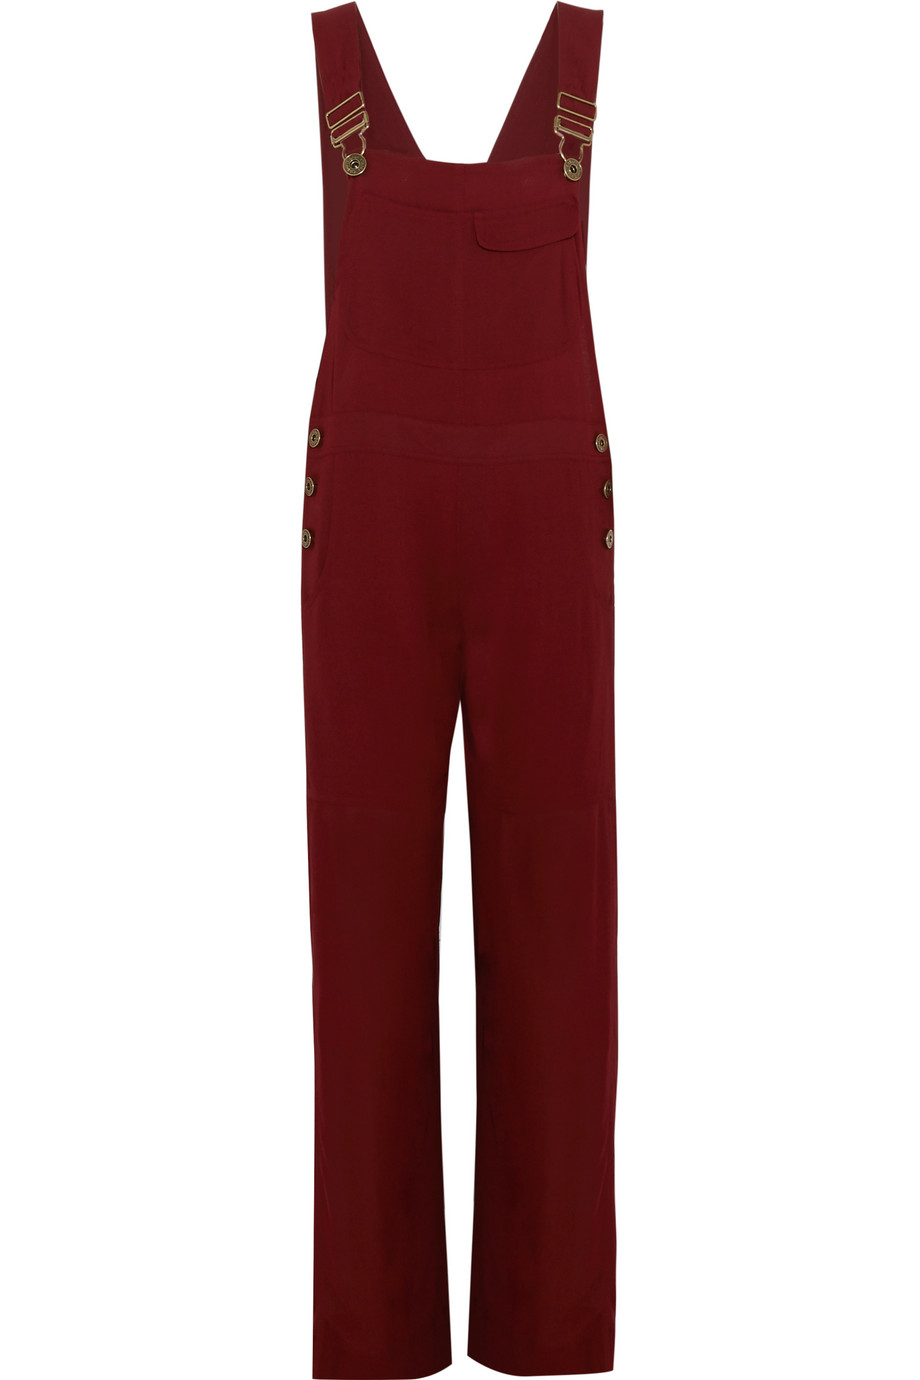 Chloé Crepe Overalls, Burgundy, Women's, Size: 34